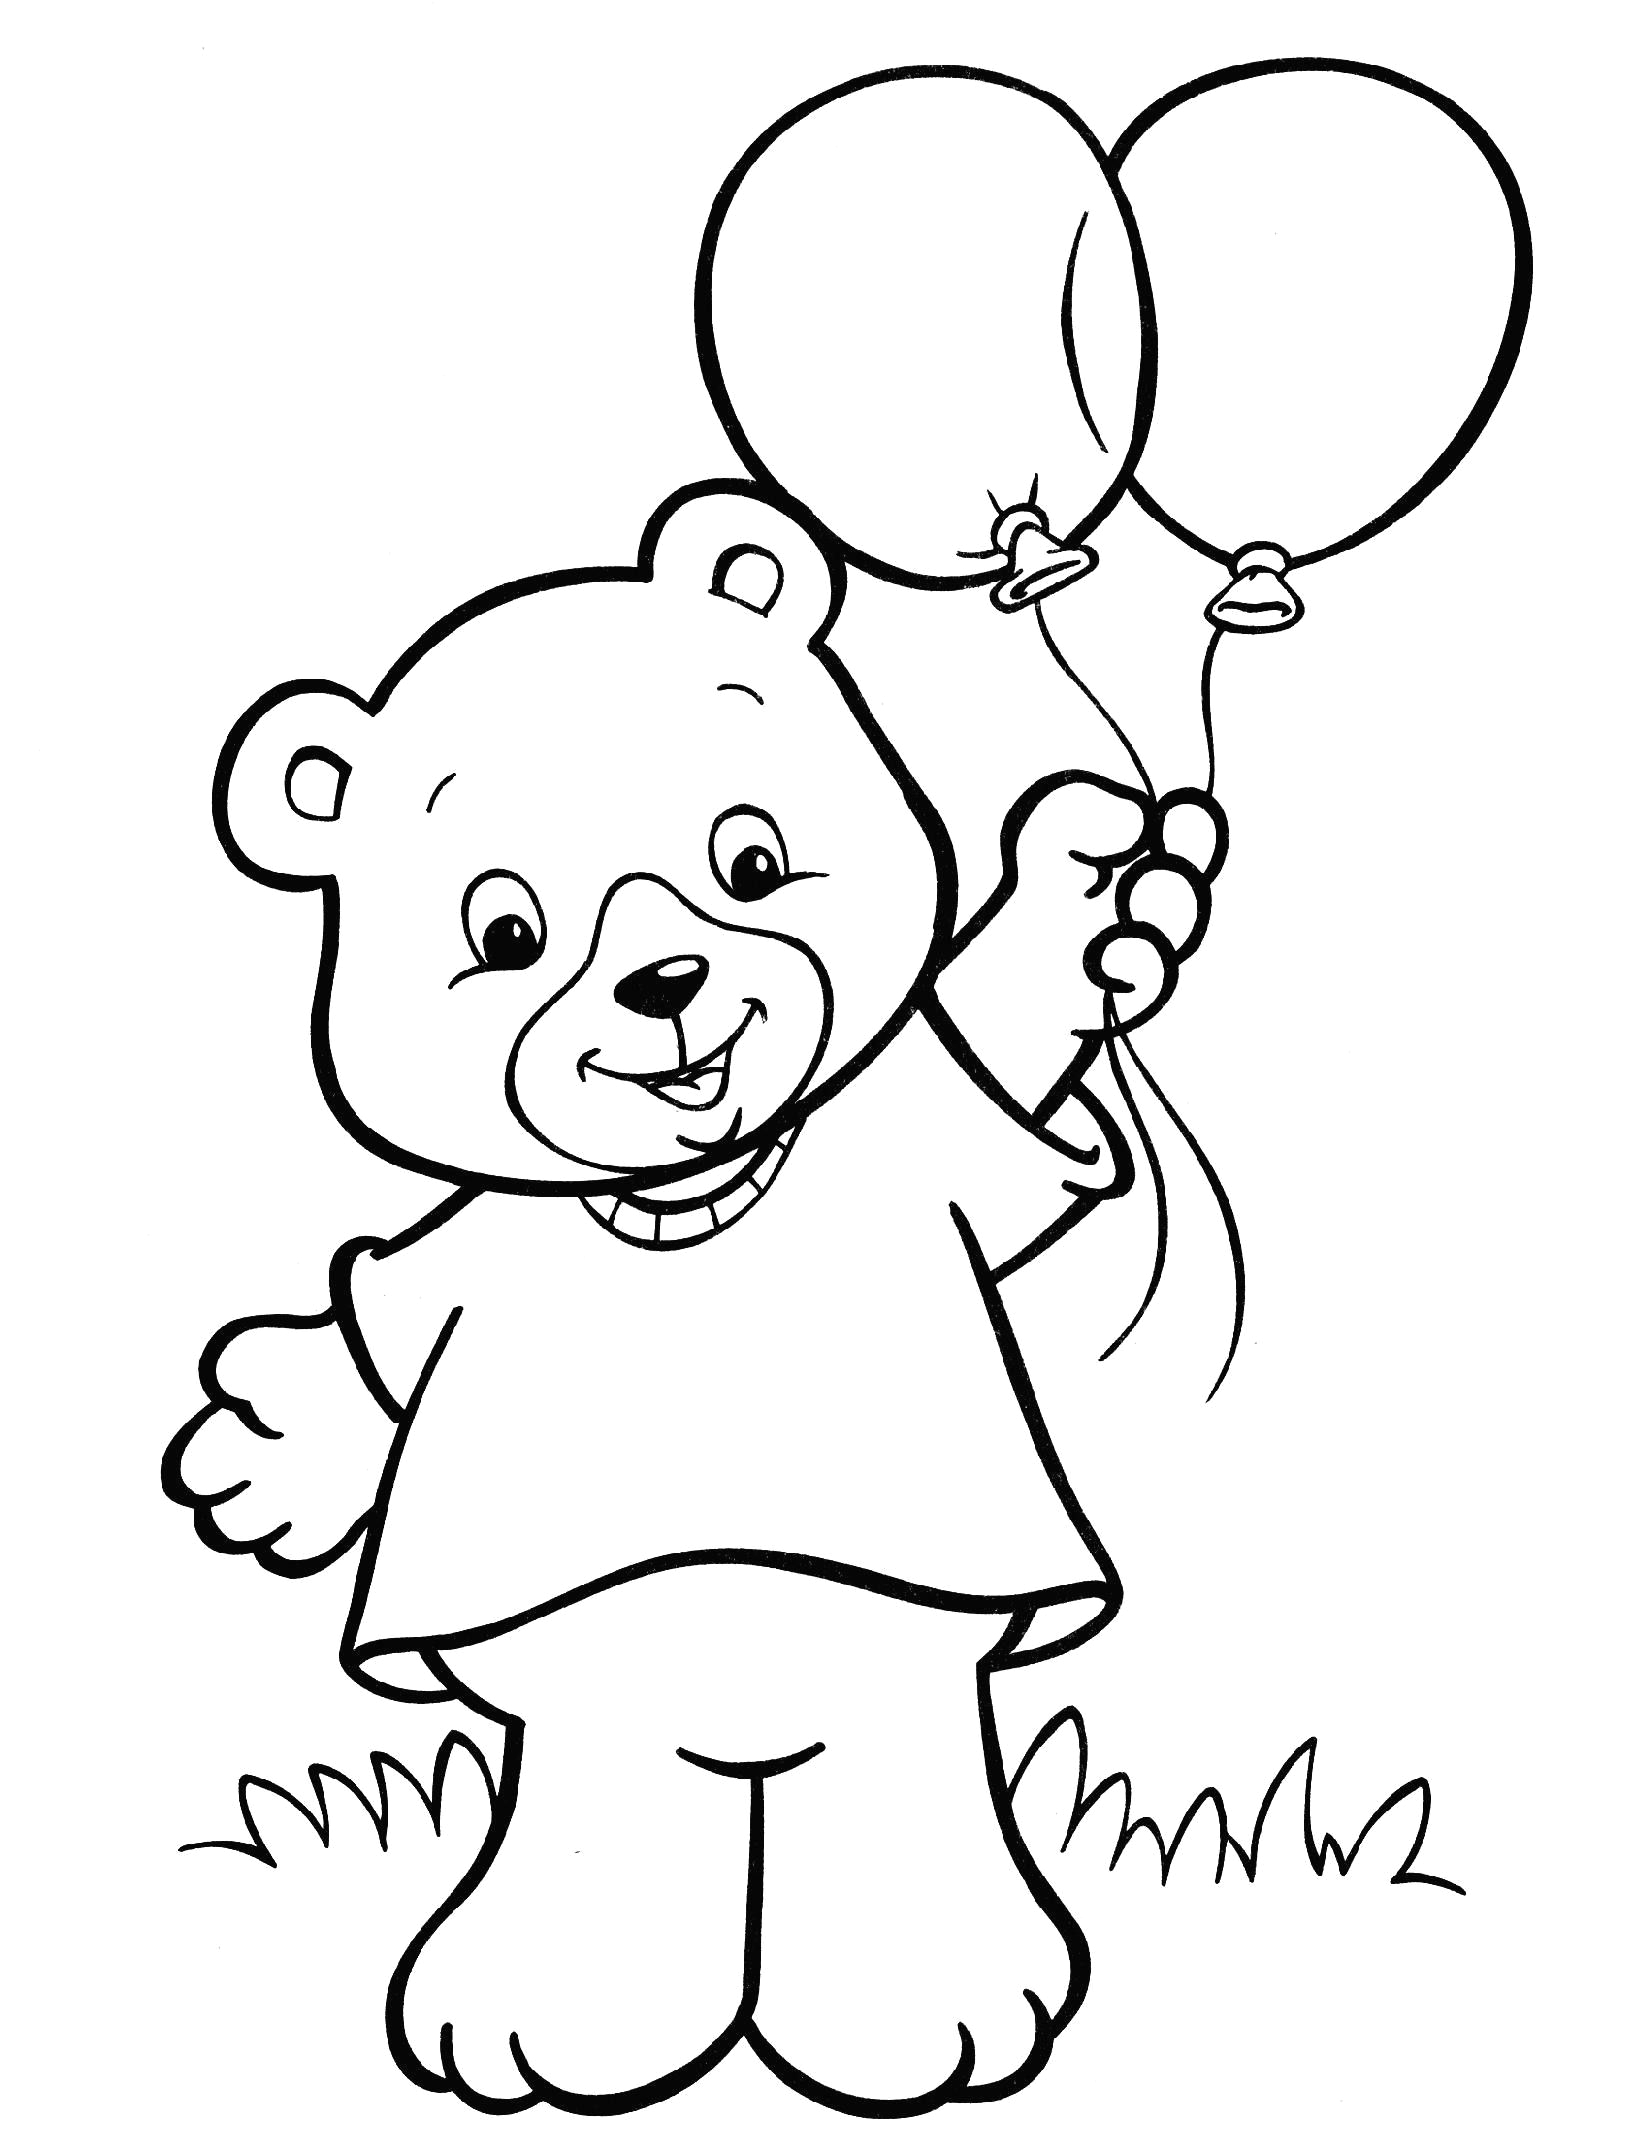 Online Coloring Pages for 3 Year Olds Free Coloring Pages for 3 Year Olds Coloring Home